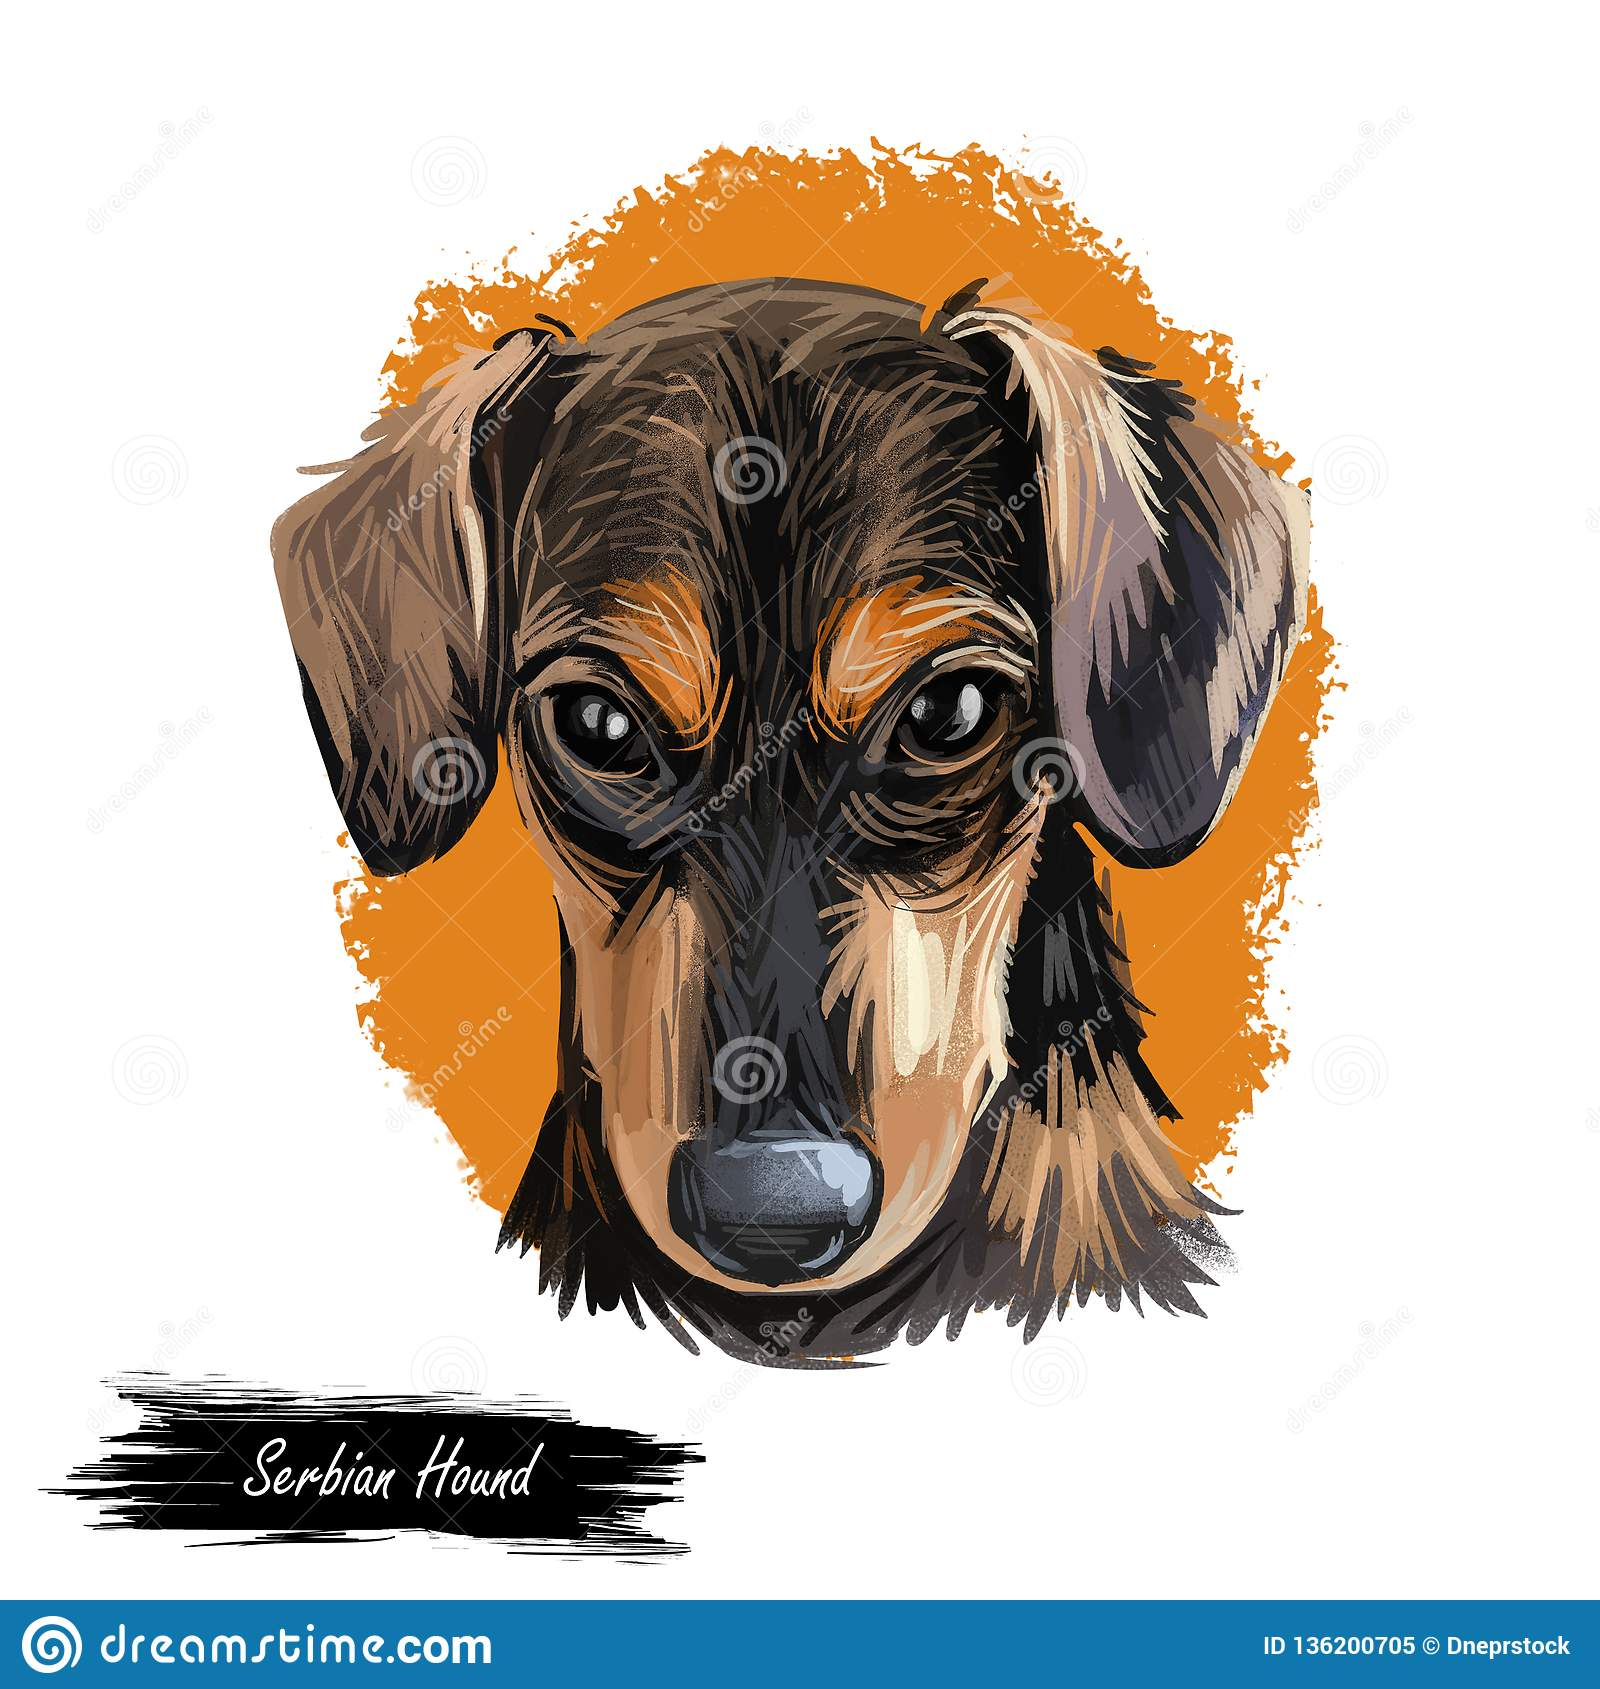 Serbian Hound pet digital art, watercolor hand drawn poritair of canine. Domestic animal from Serbia and Montenegro